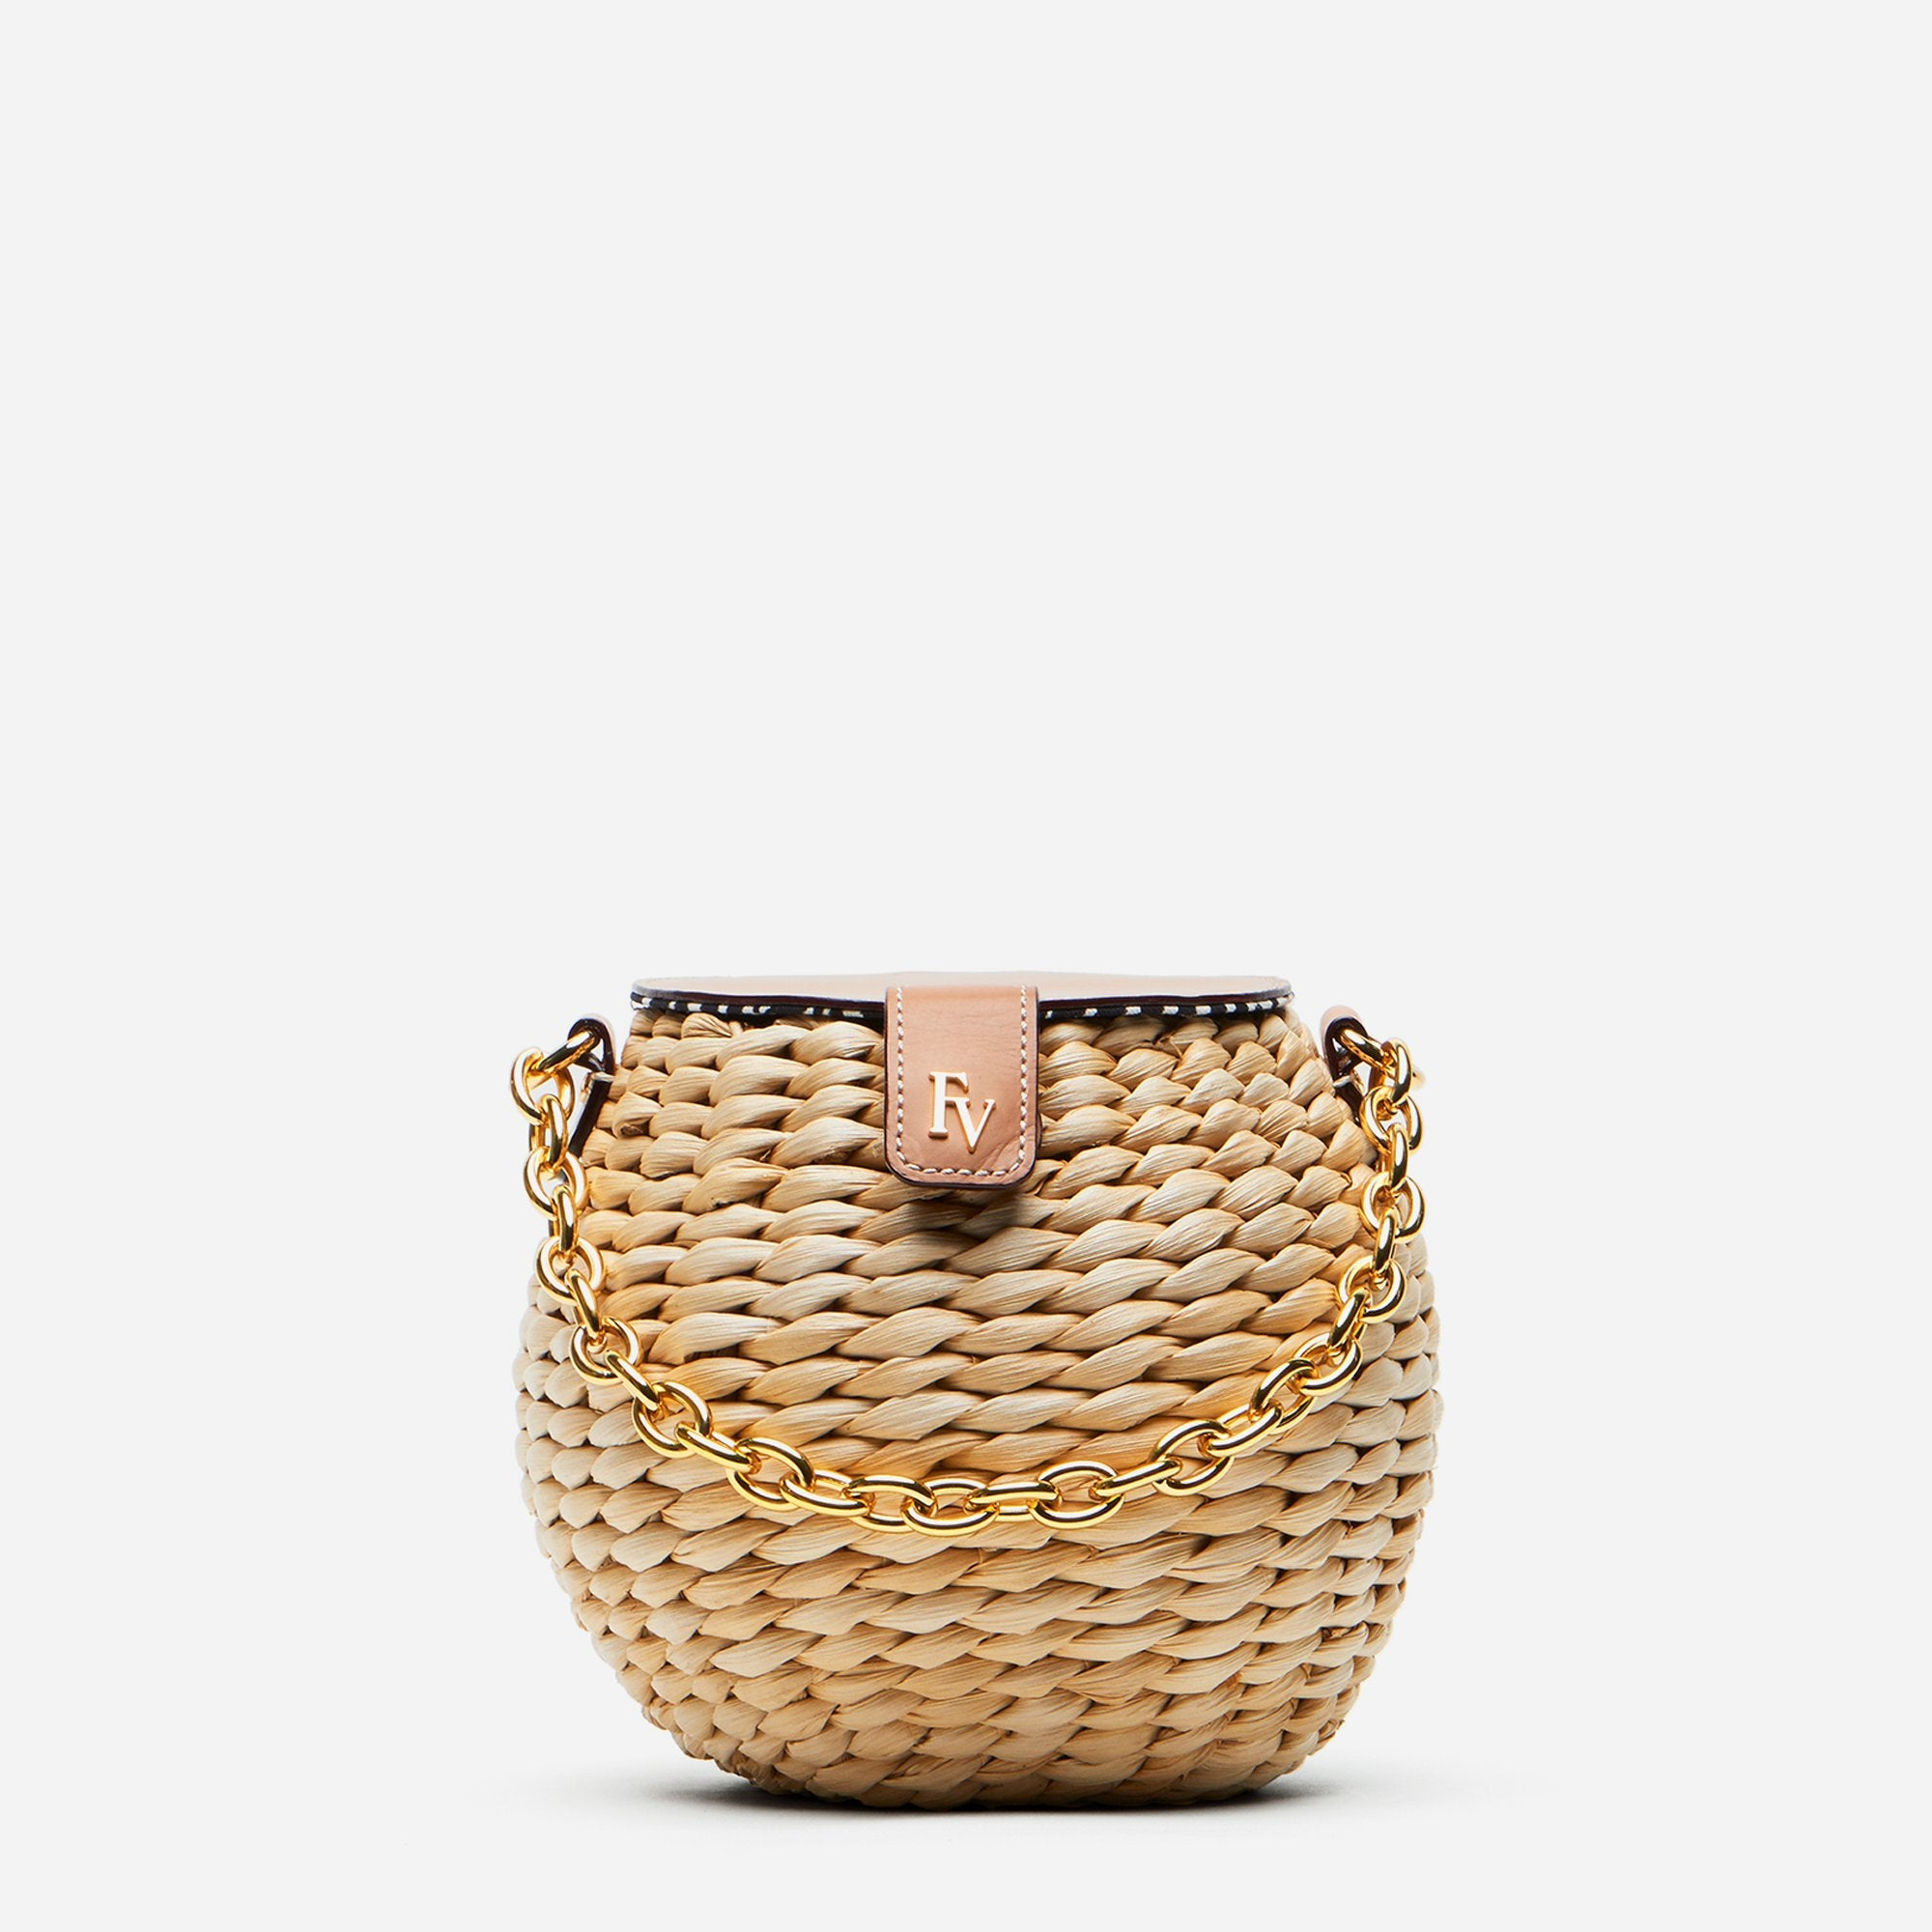 Honeypot Basket Vachetta Leather Natural